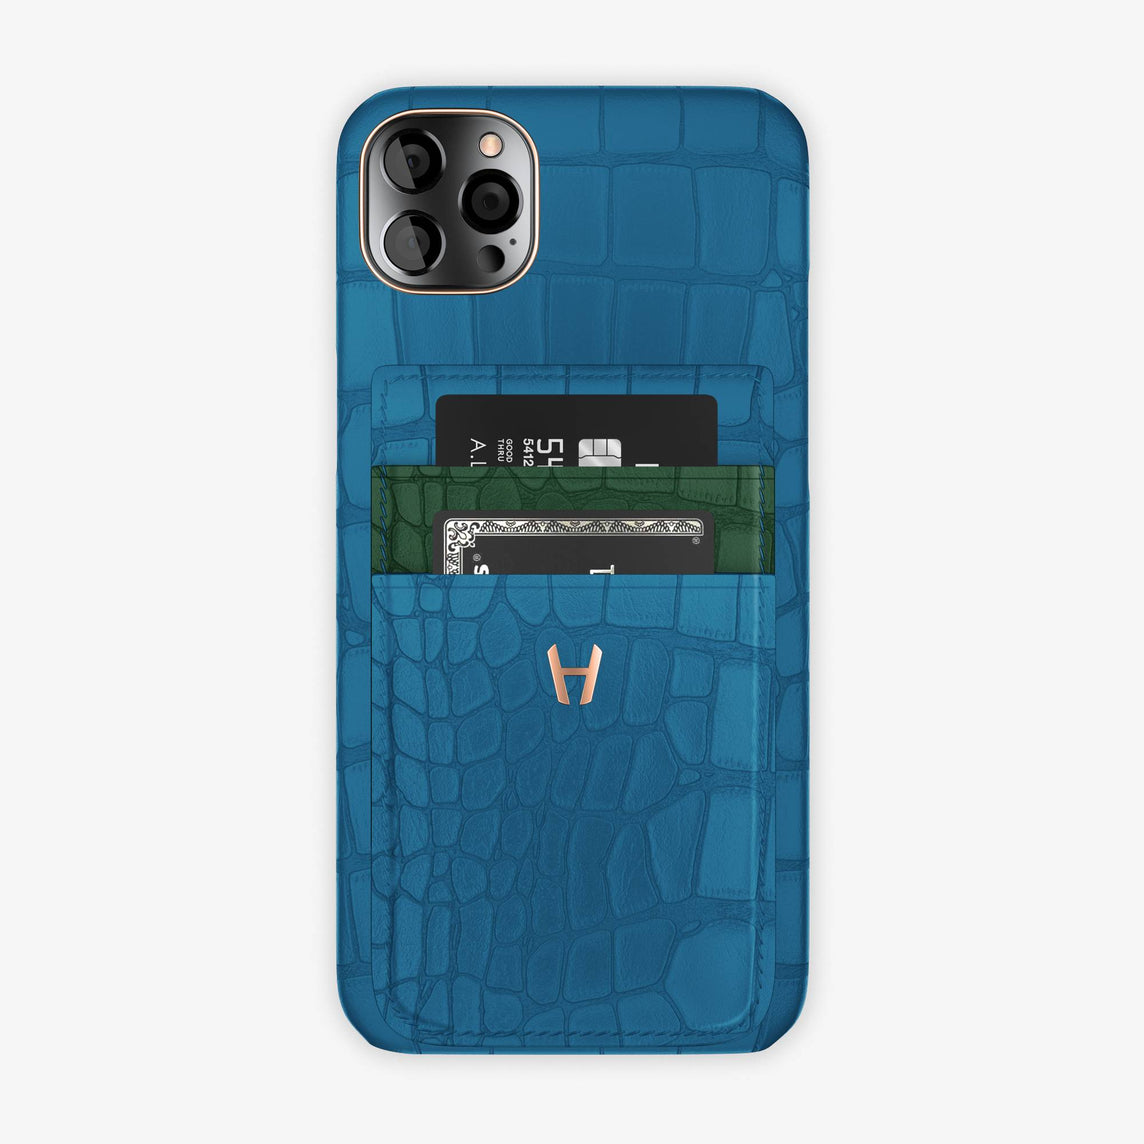 Alligator Pocket Case iPhone  12 Pro Max | Blue Lagoon/Green - Rose Gold